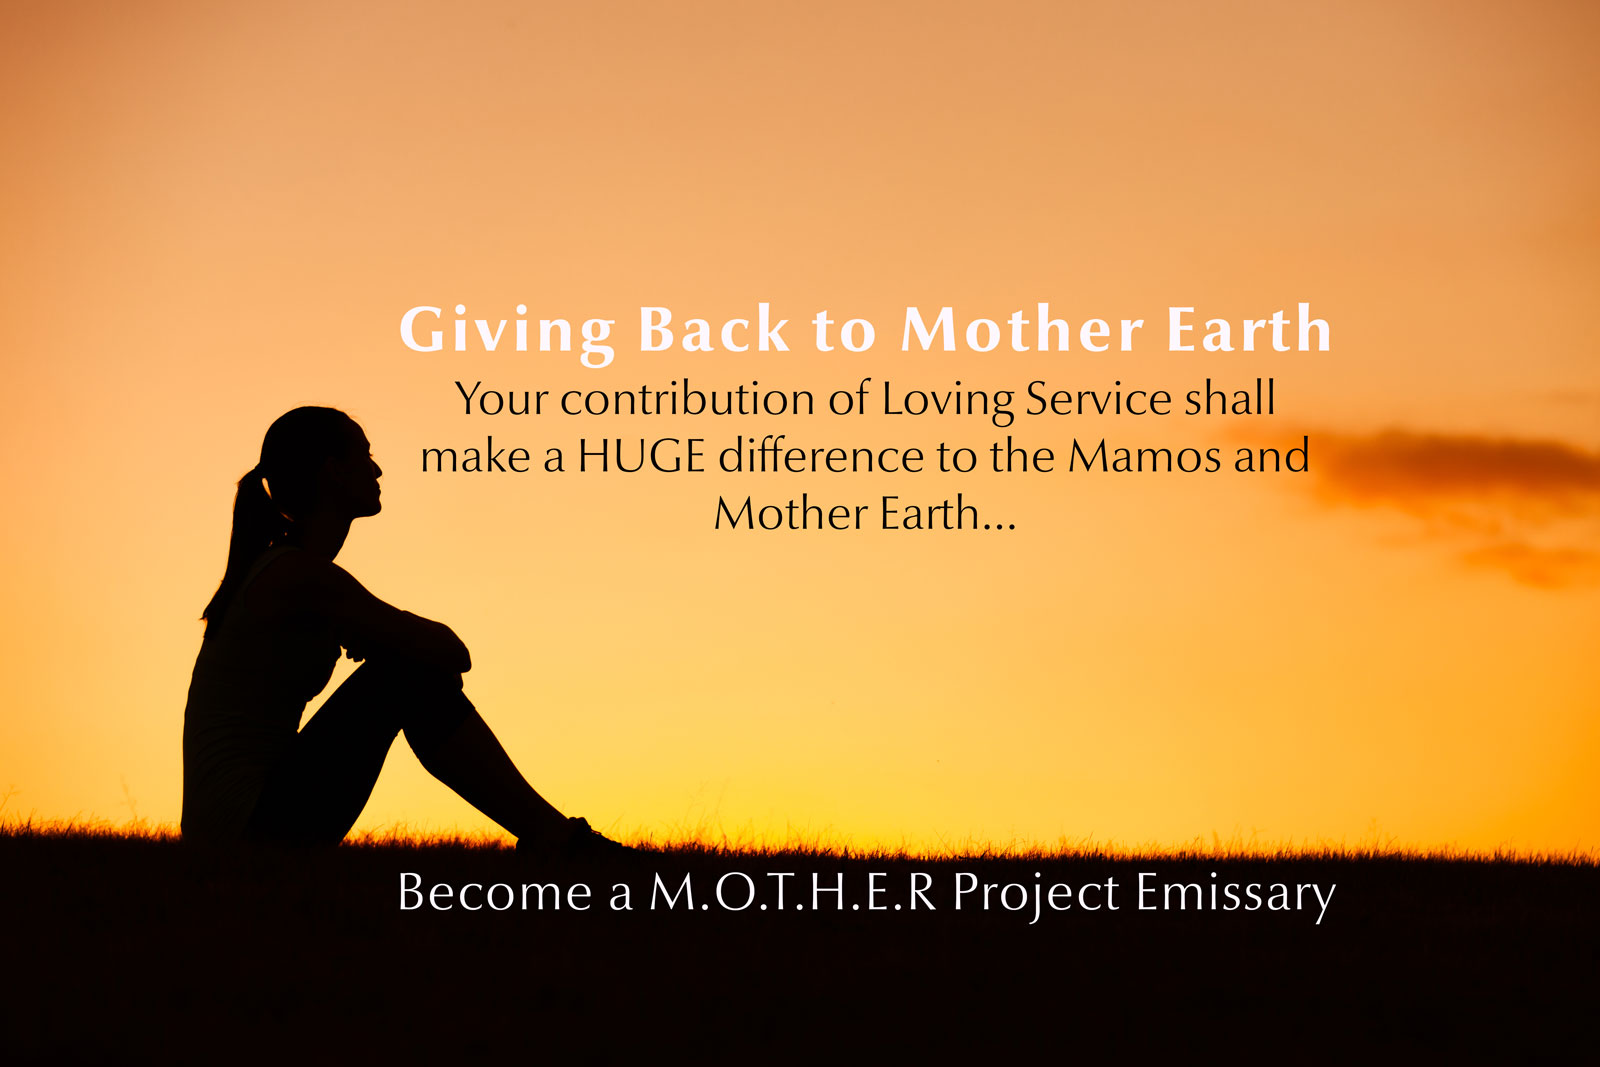 Become-a-MOTHER-Project-Emissary